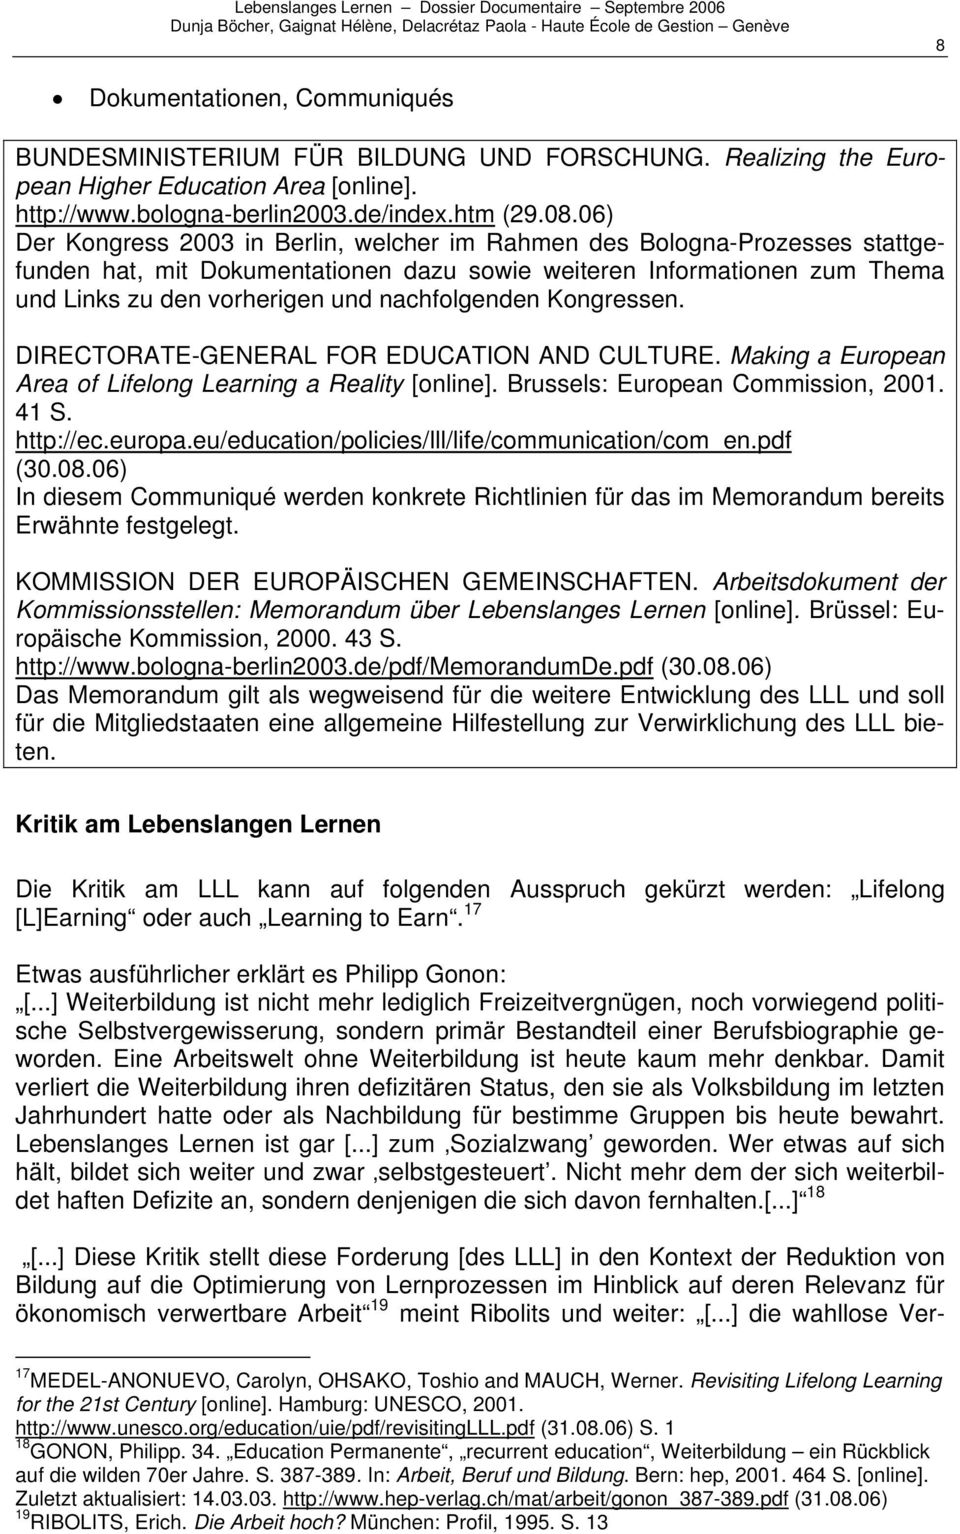 nachfolgenden Kongressen. DIRECTORATE-GENERAL FOR EDUCATION AND CULTURE. Making a European Area of Lifelong Learning a Reality [online]. Brussels: European Commission, 2001. 41 S. http://ec.europa.